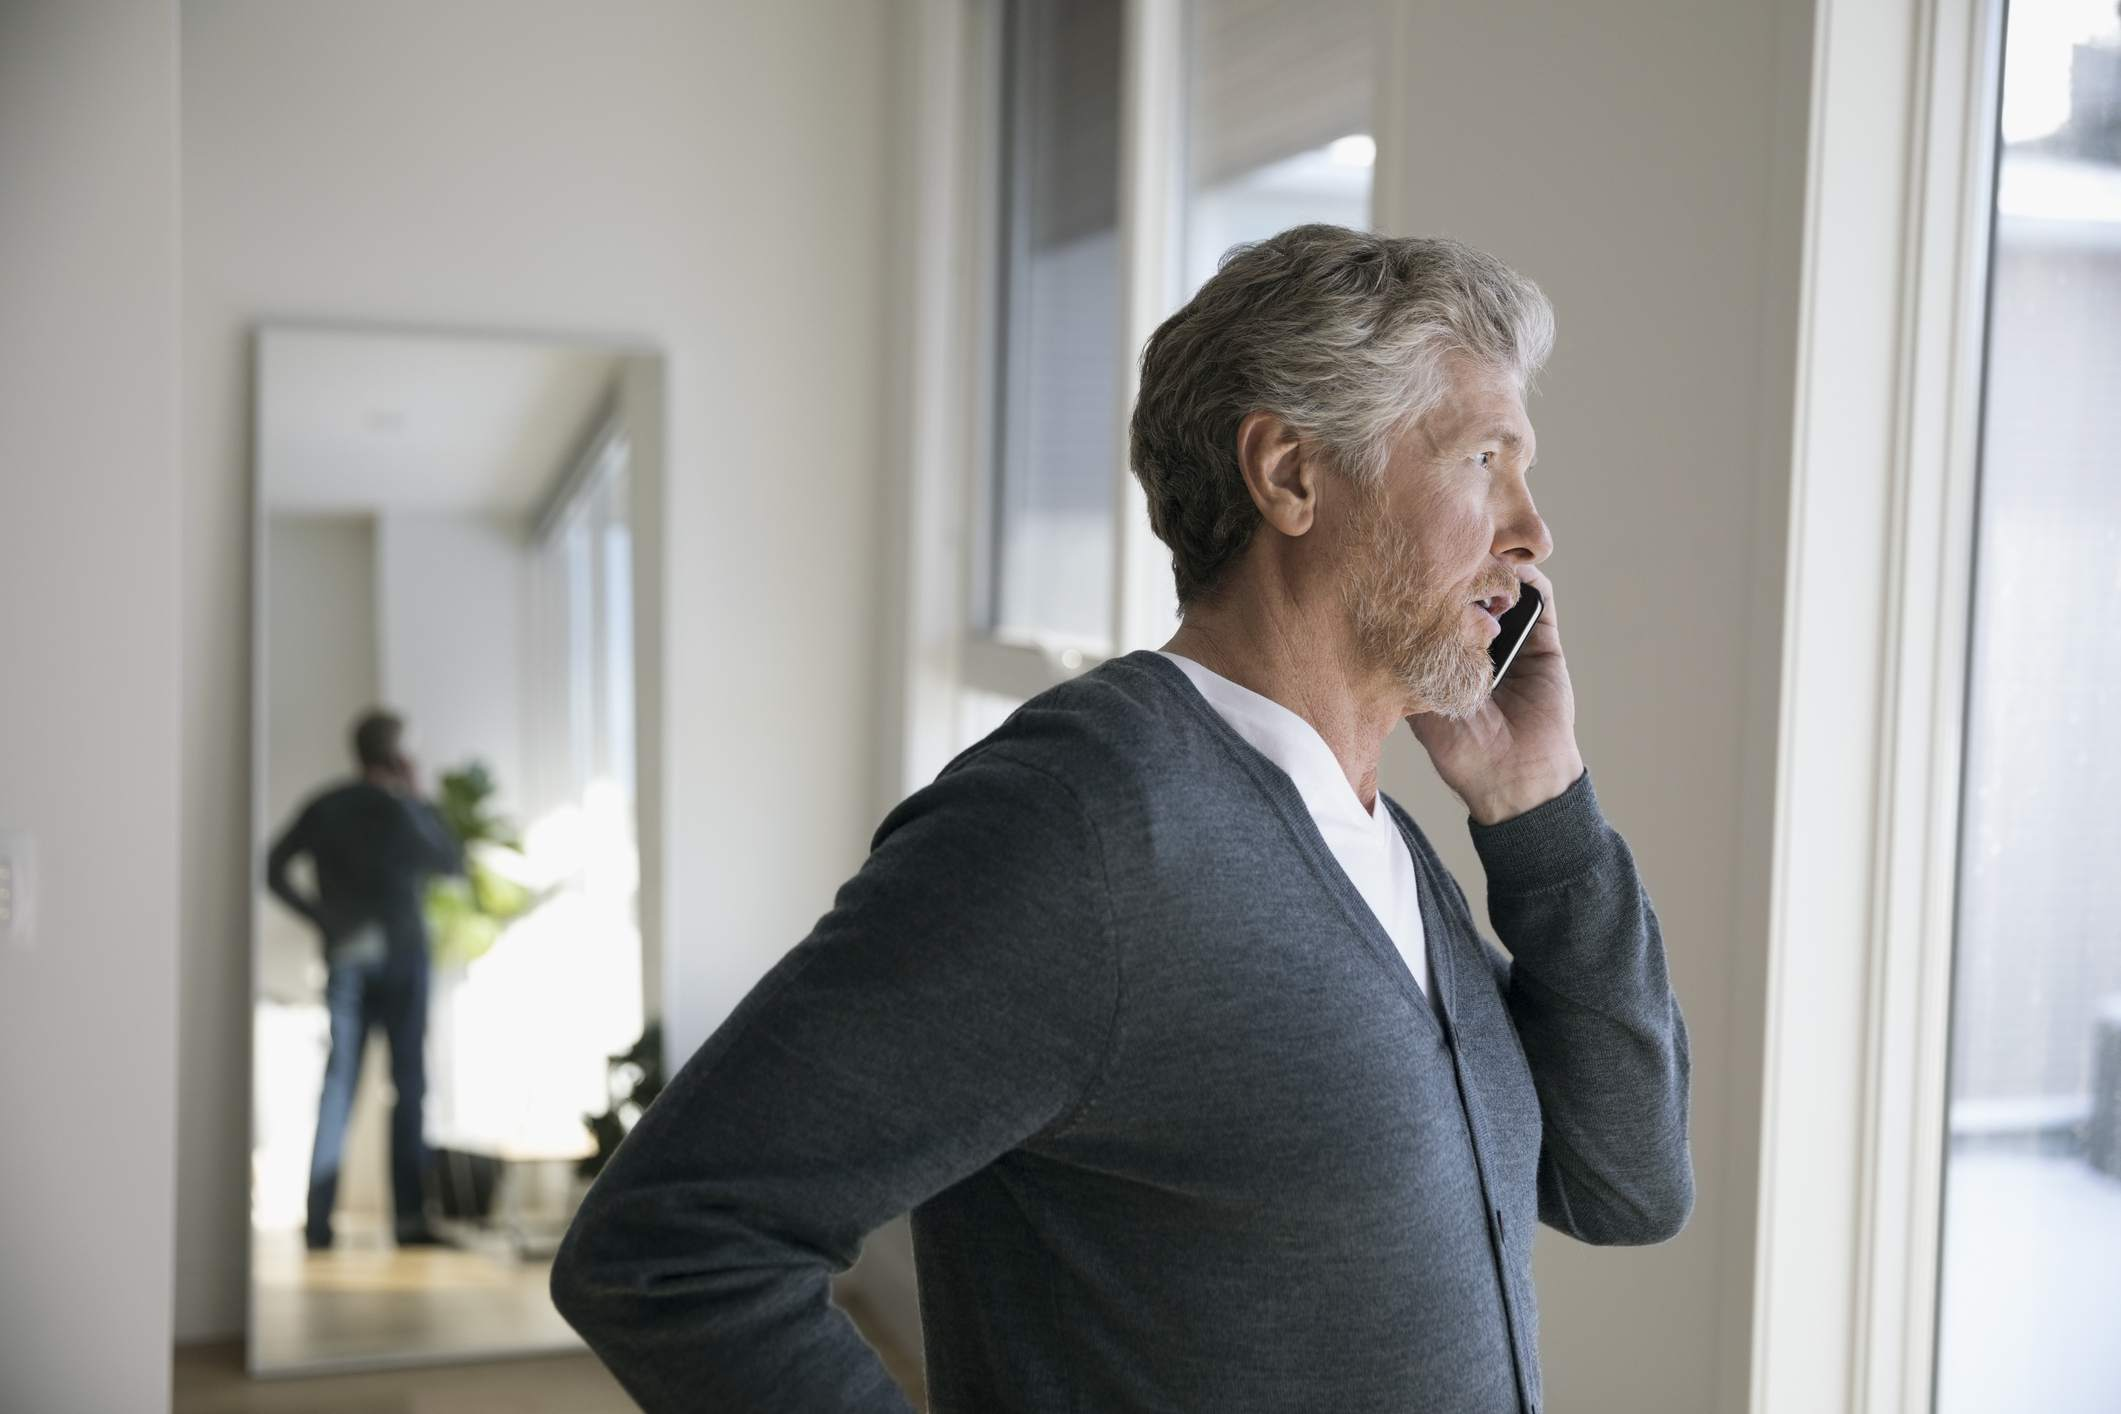 Man talking on cell phone, looking out window